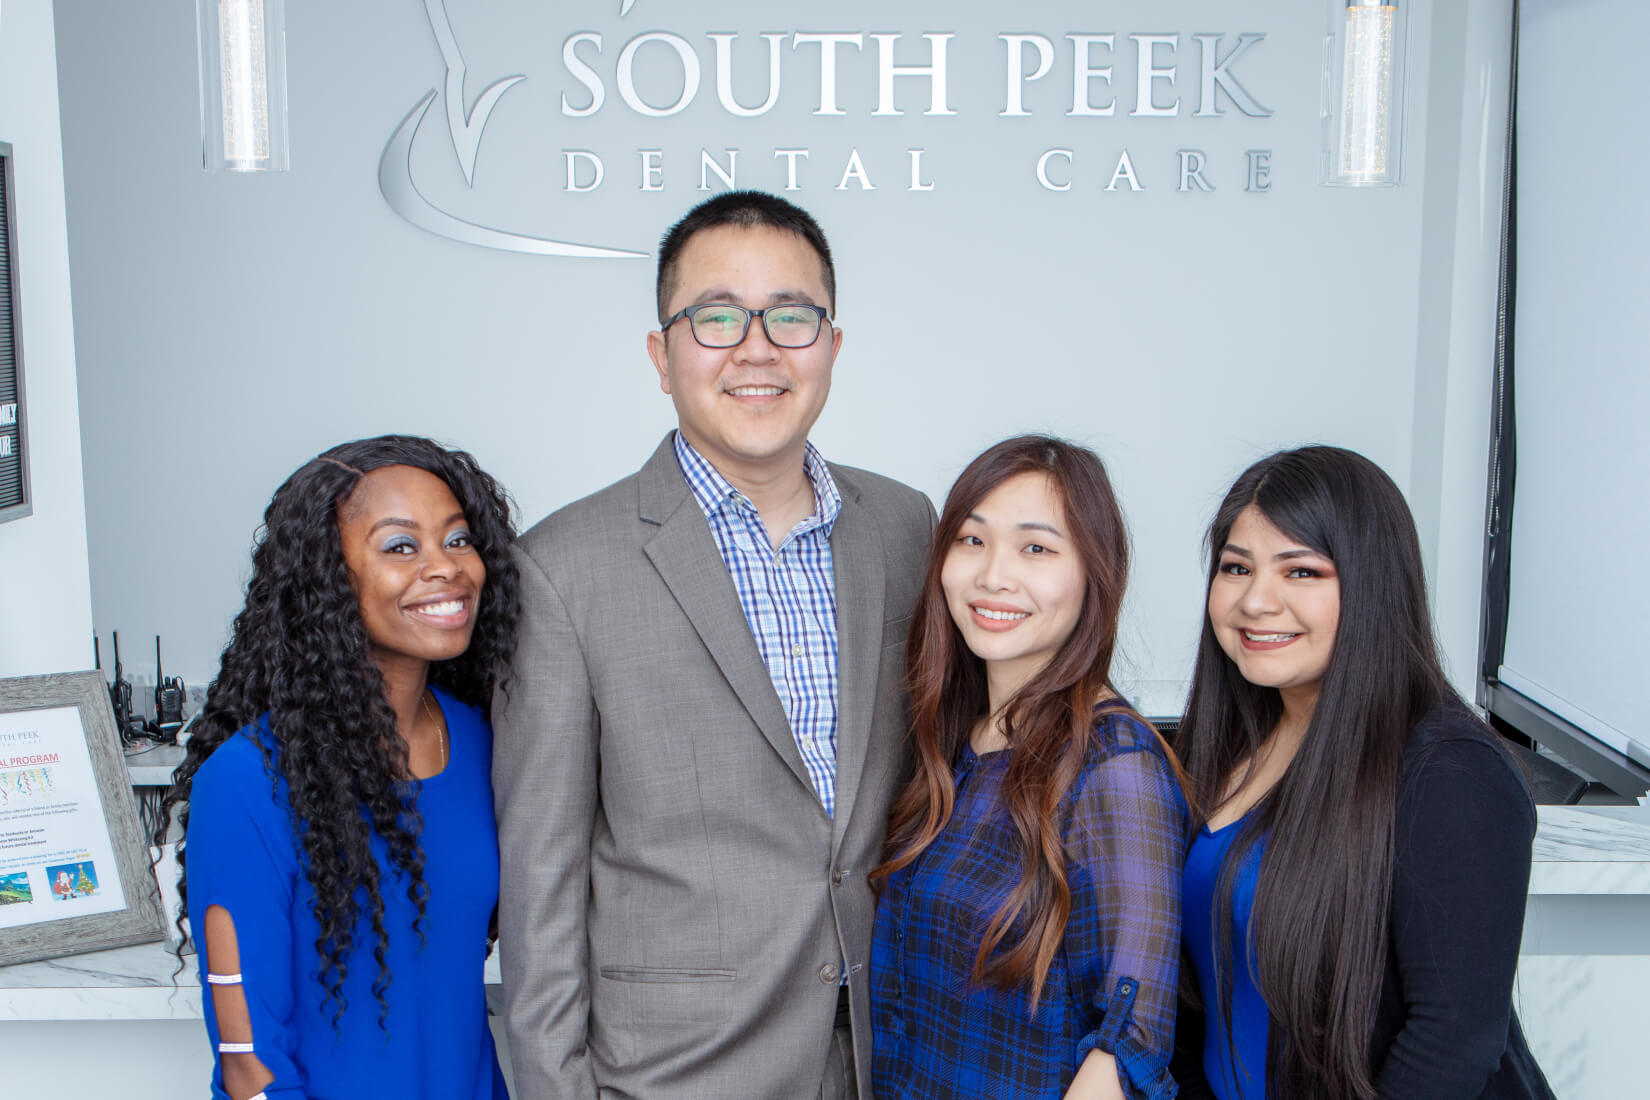 Dr. Nguyen and Team. Dentist in Katy Texas